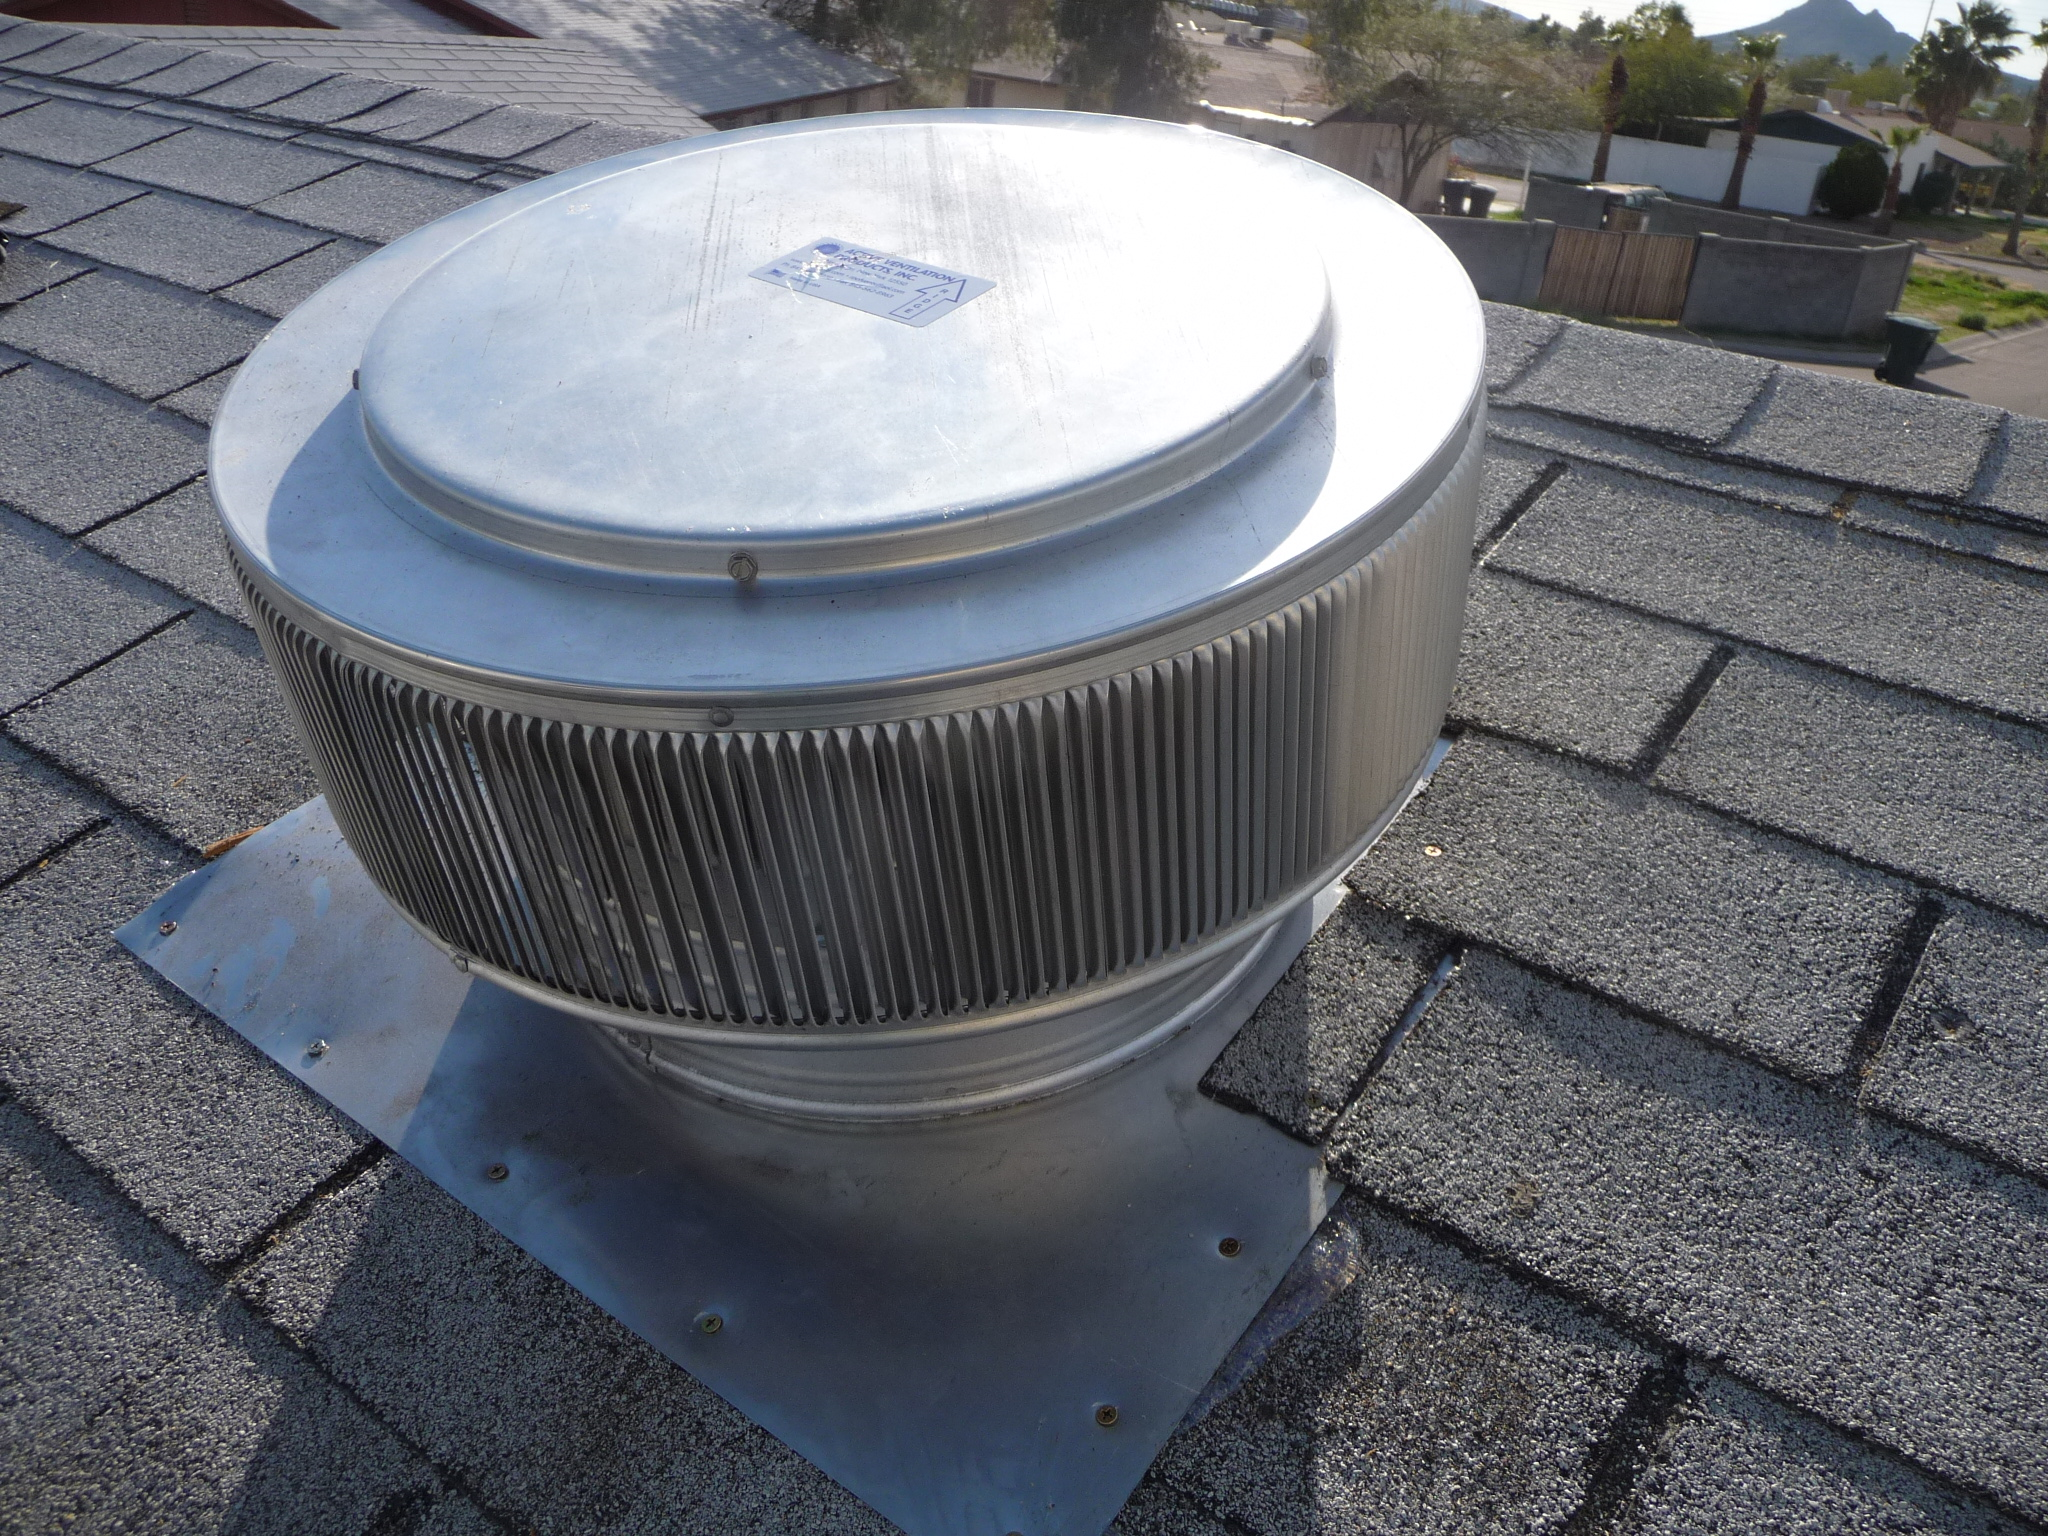 Roof Top Vent : Roof vents aluminum insulvent one way breather vent